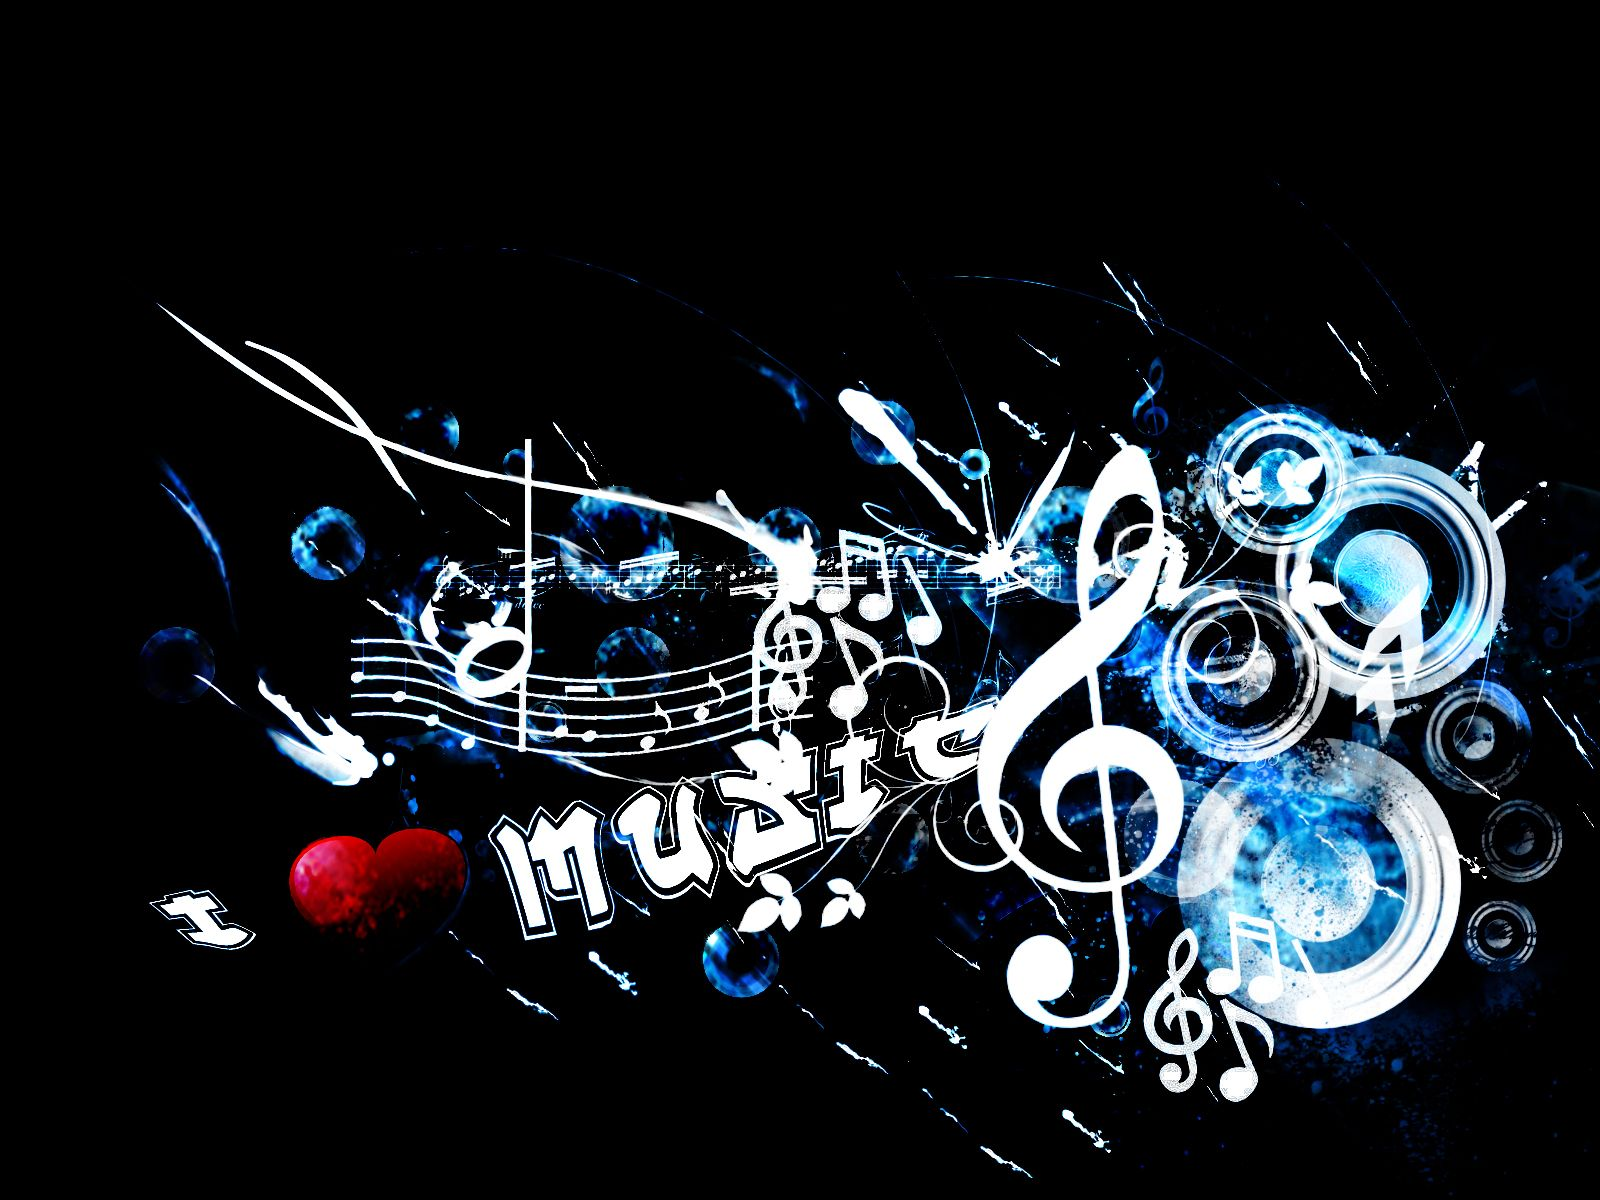 Love Music Art Abstract Black Wallpaper Images 4418 Wallpaper Music Wallpaper Music Backgrounds Fall Wallpaper